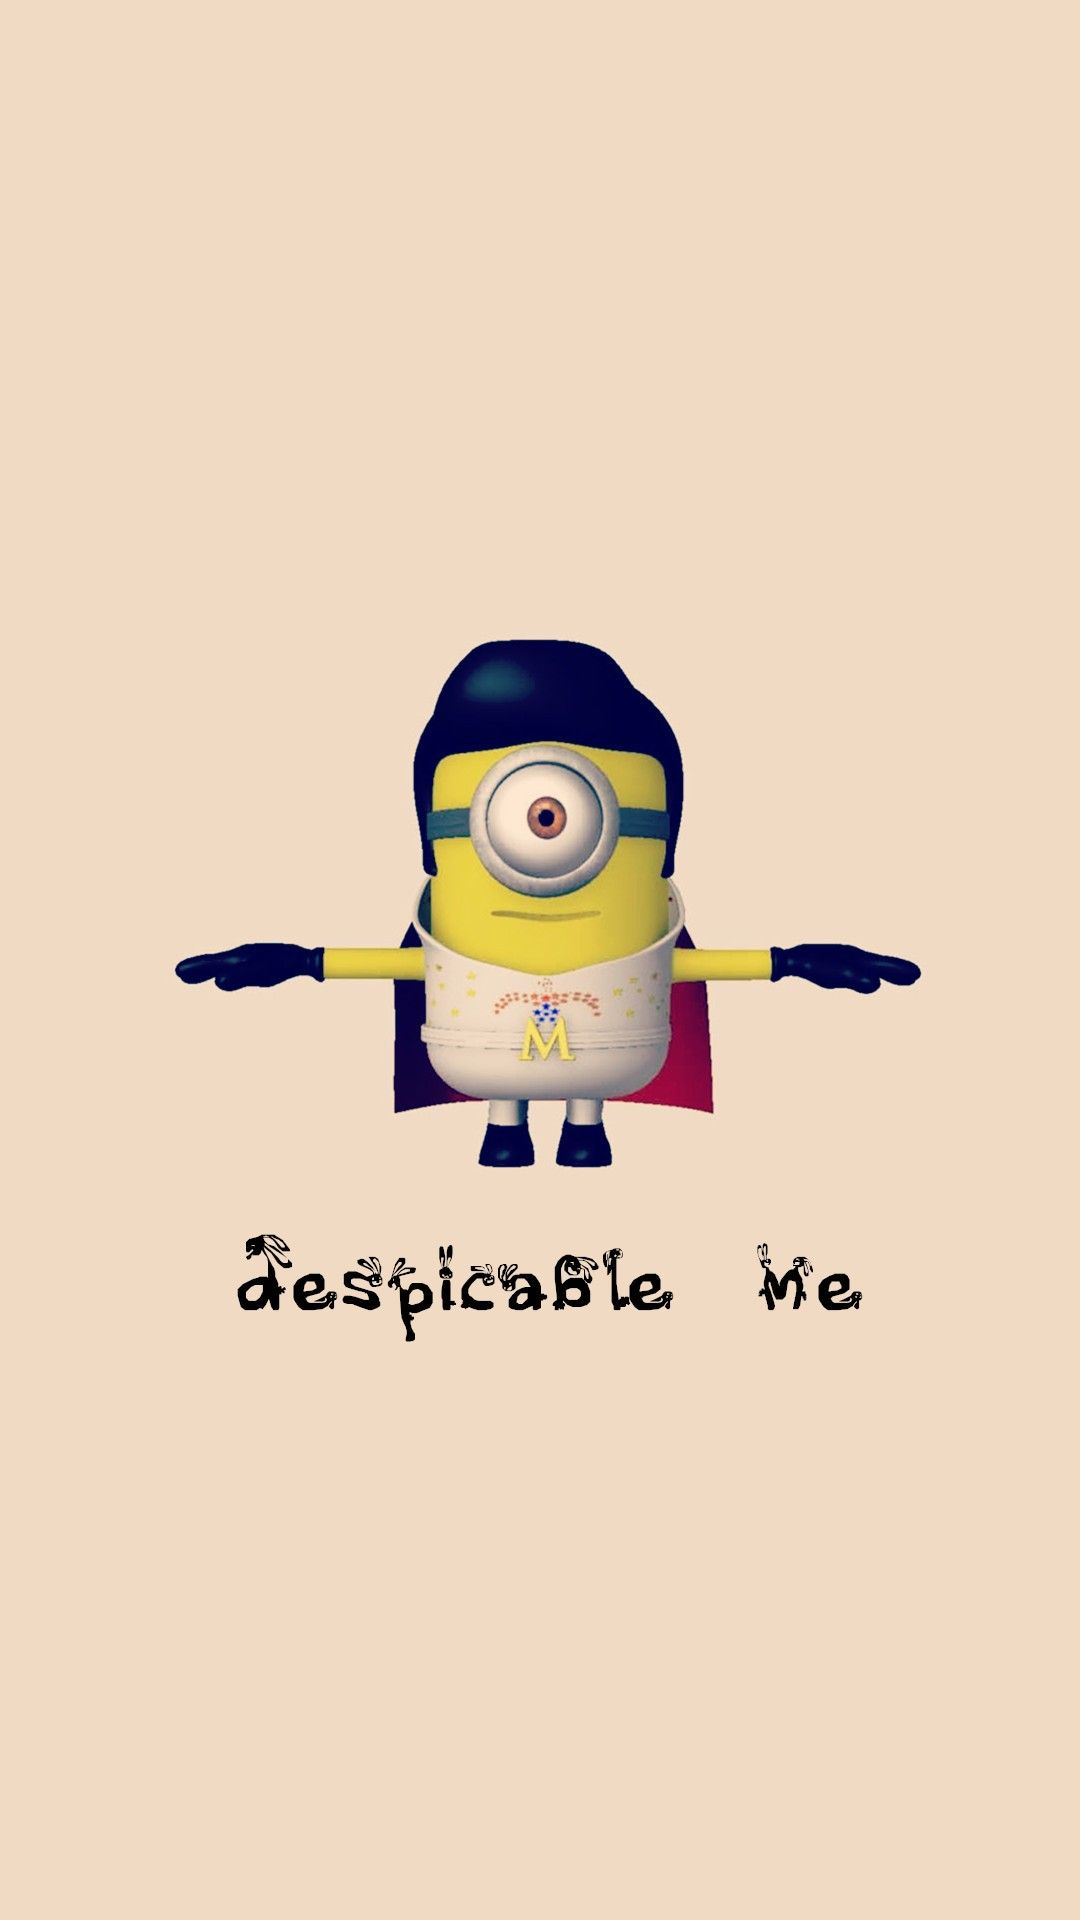 Elvis presley minion apple iphone 6 plus wallpaper hd despicable me 2014 halloween iphone wallpaper